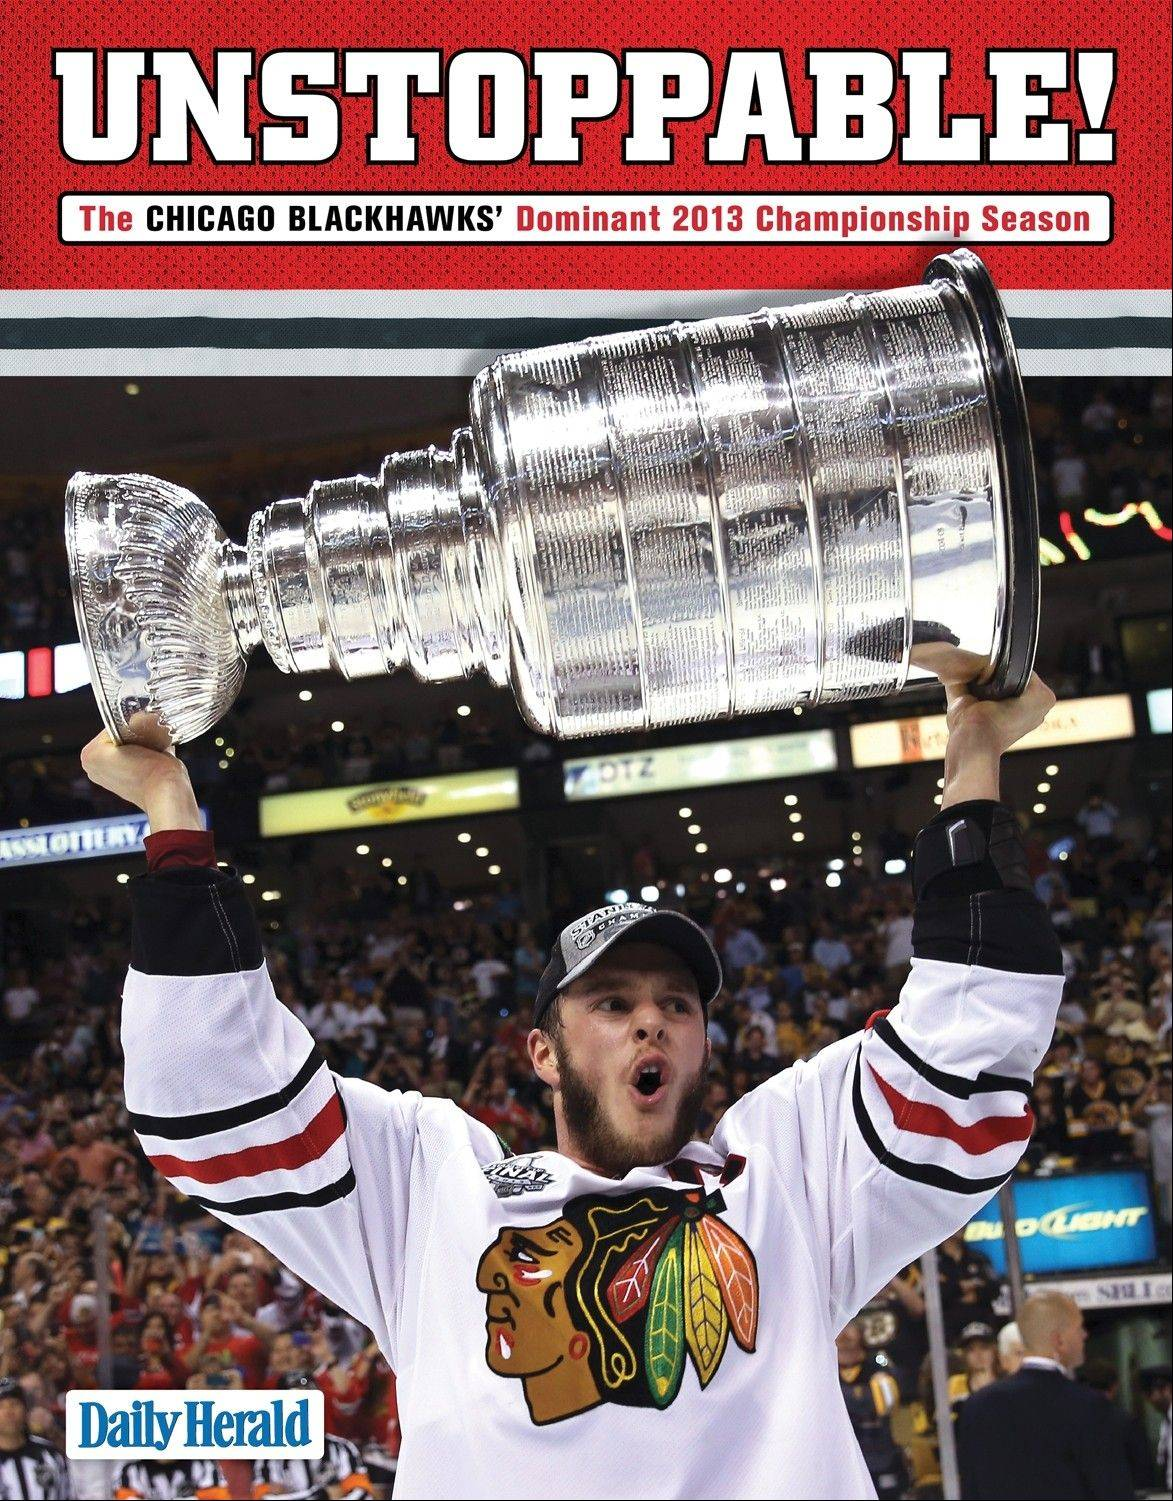 "The Daily Herald's commemorative Blackhawks book -- ""Unstoppable!"" -- is available at $START_URL$triumphbooks.com;http://www.triumphbooks.com/products/unstoppable_/1572436616.php?page_id=$STOP_URL$."